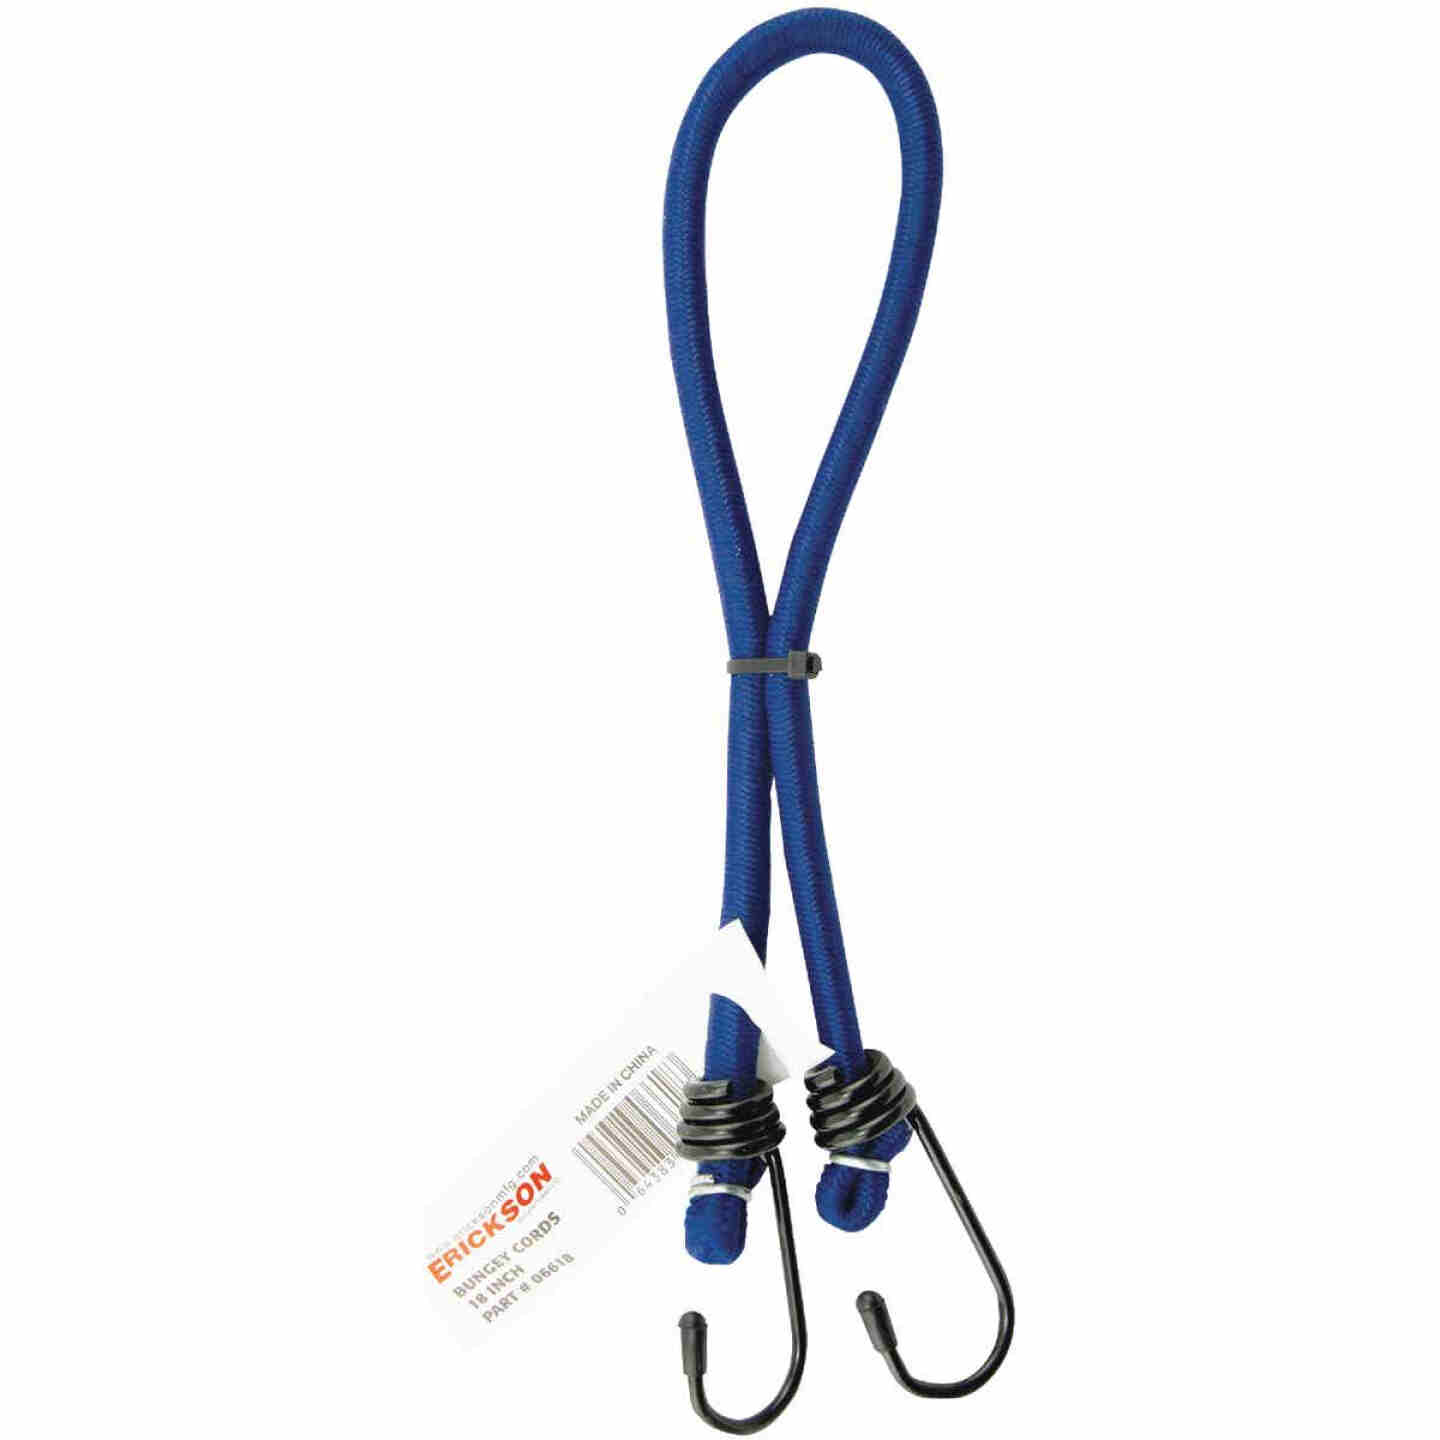 Erickson 1/4 In. x 18 In. Bungee Cord, Assorted Colors Image 2